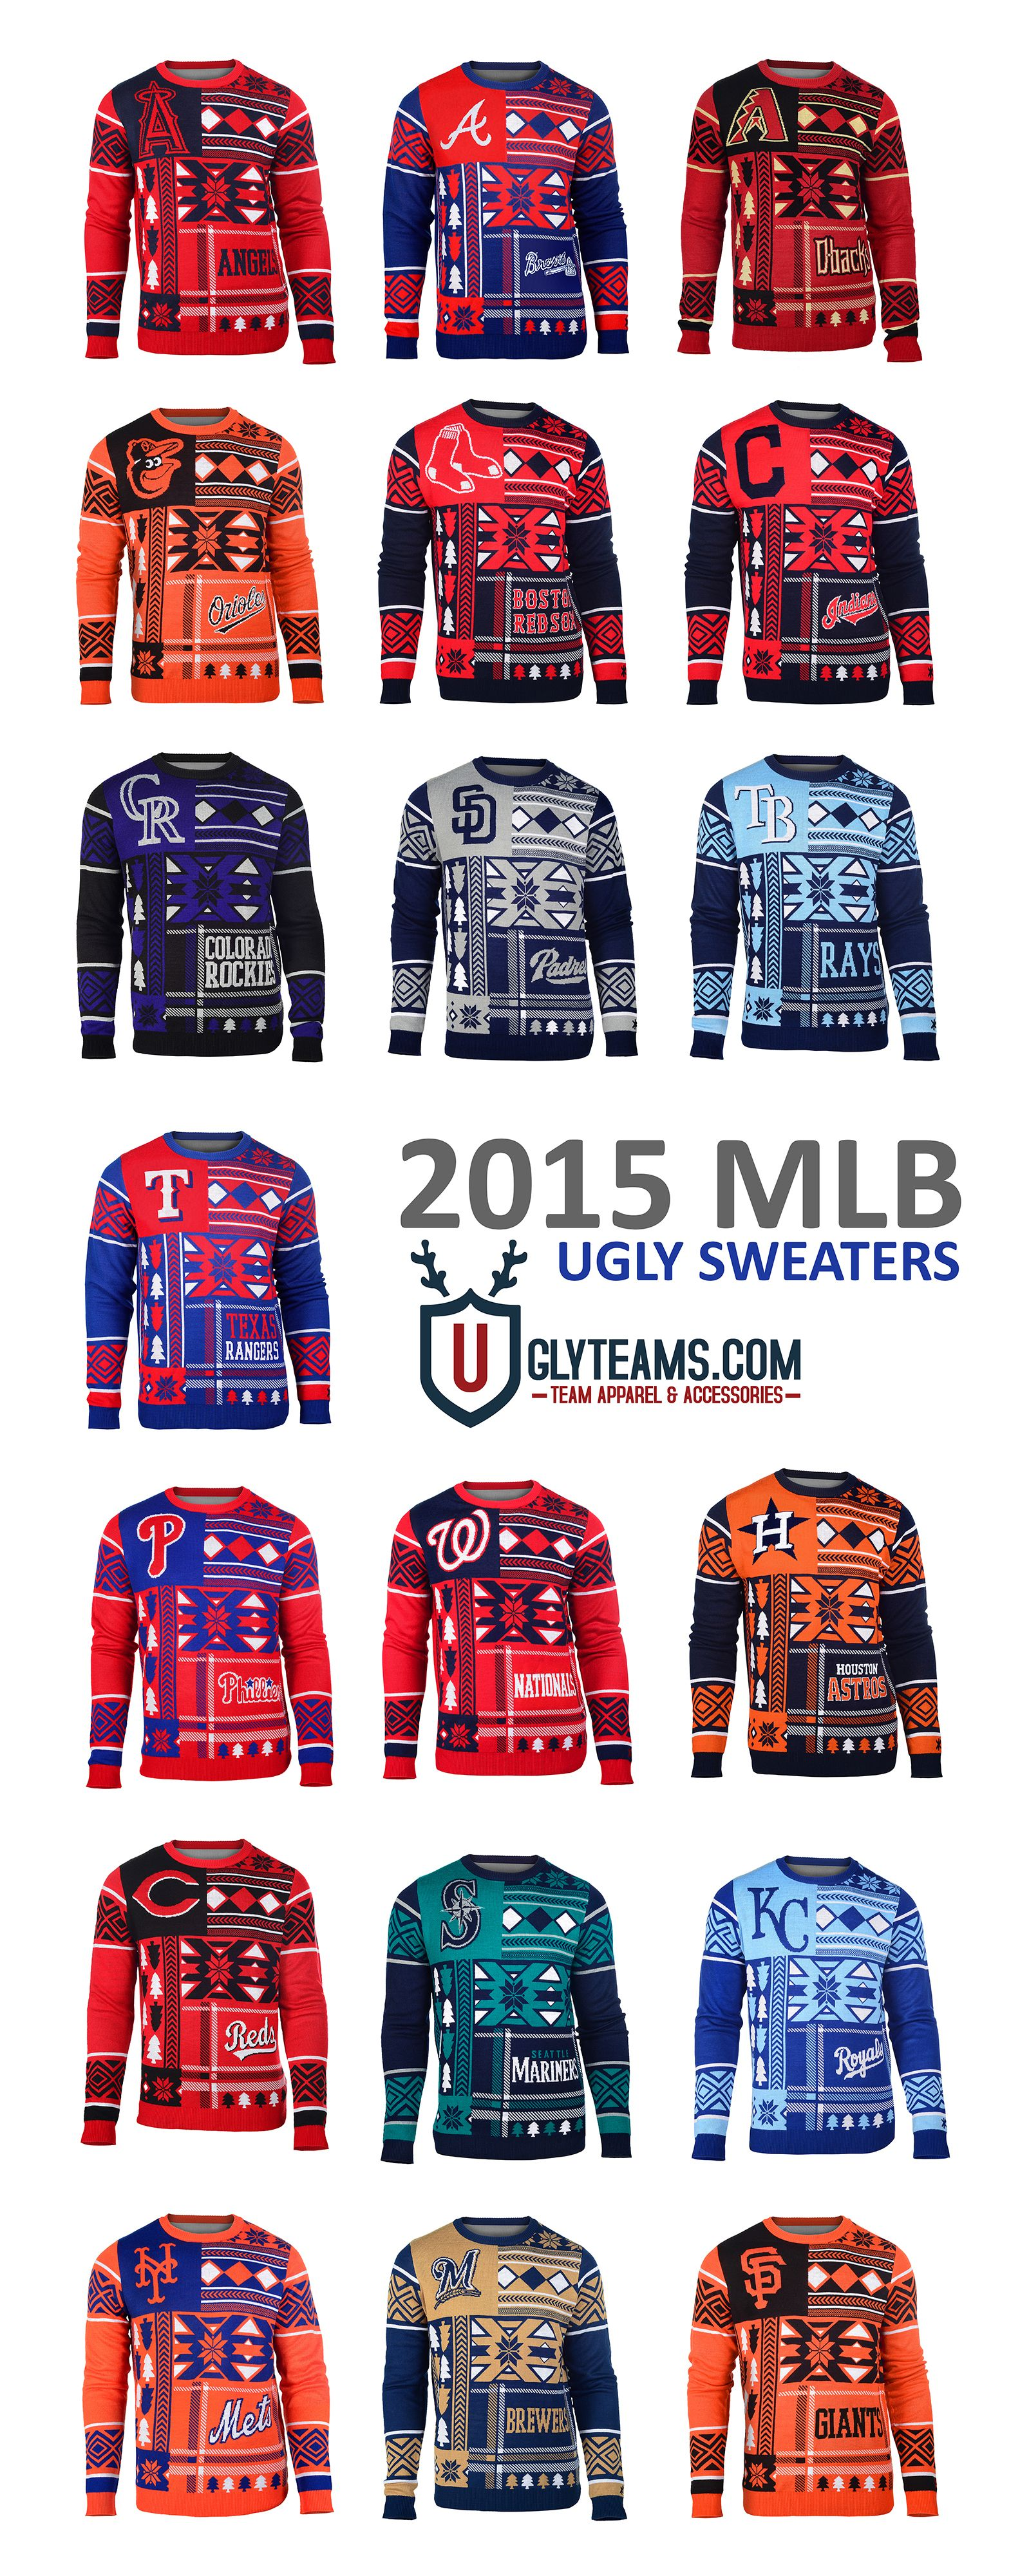 13828f3fec70 2015 MLB Ugly Sweaters from Uglyteams | Clothing | Baltimore orioles ...